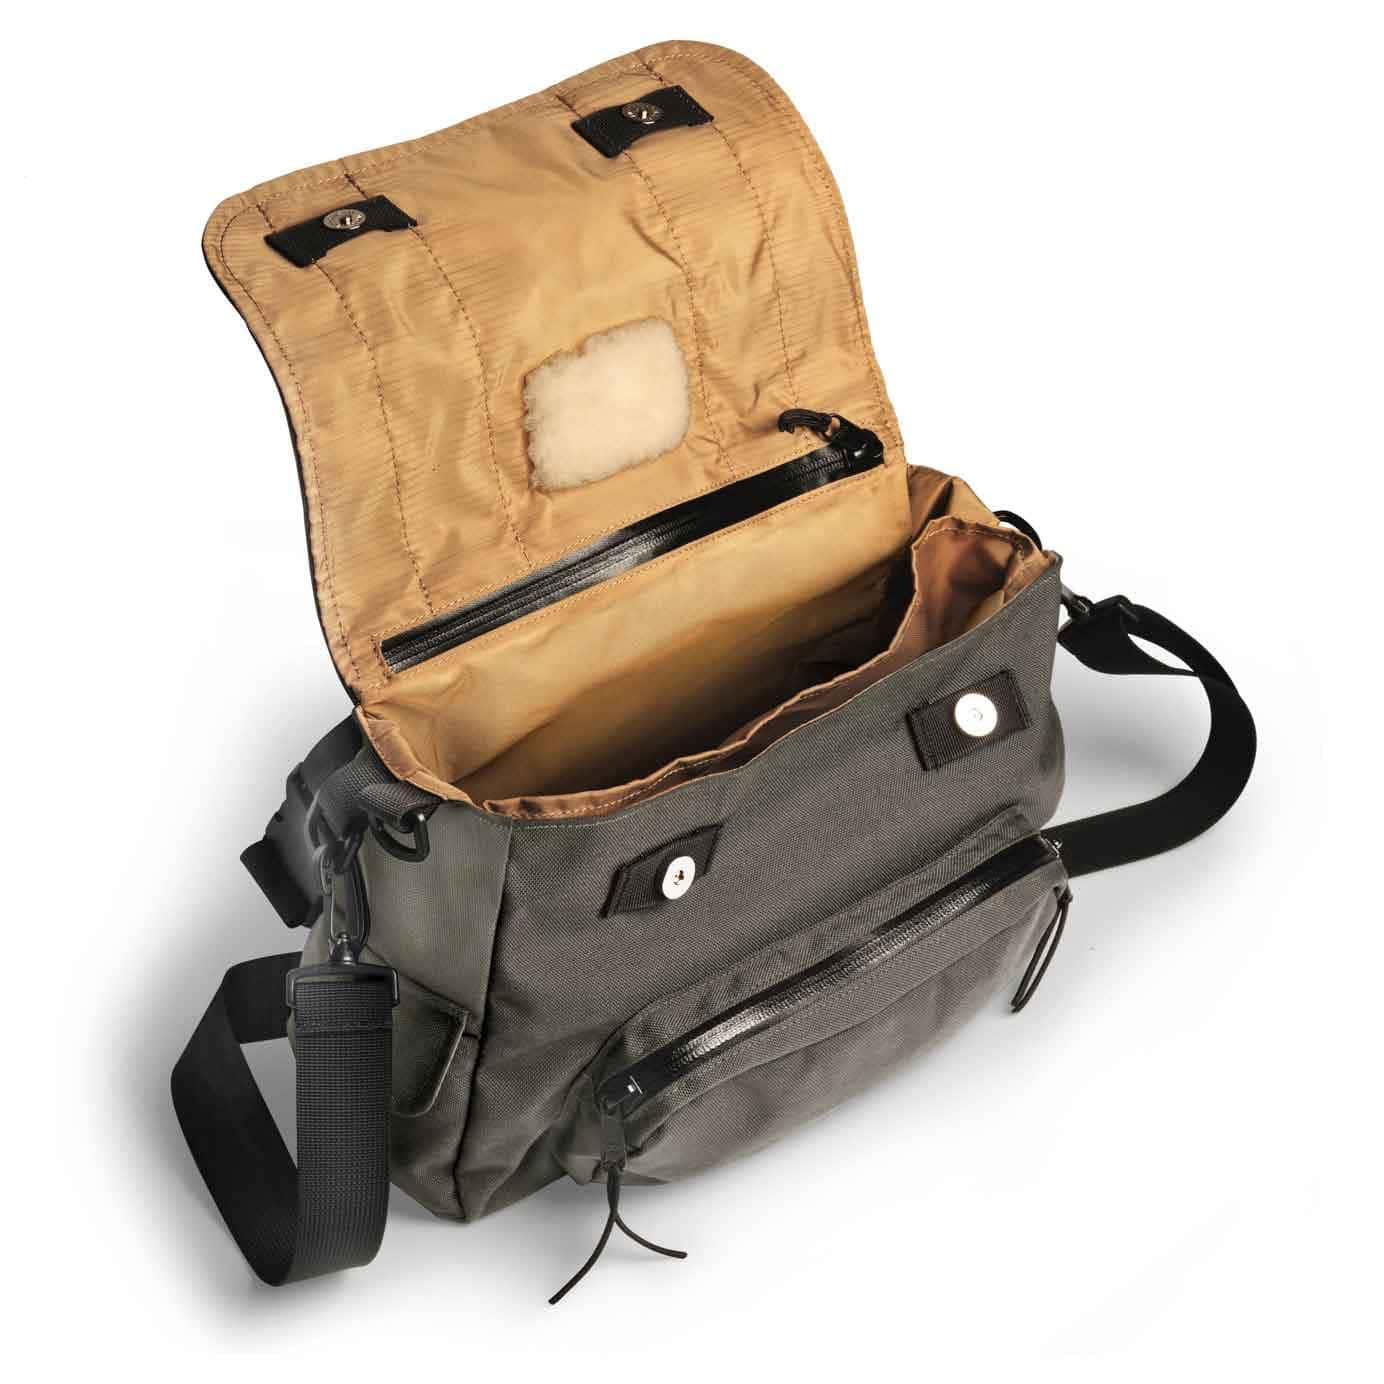 Fisk bag by timesnine fly fishing gear bag for Fly fishing backpack